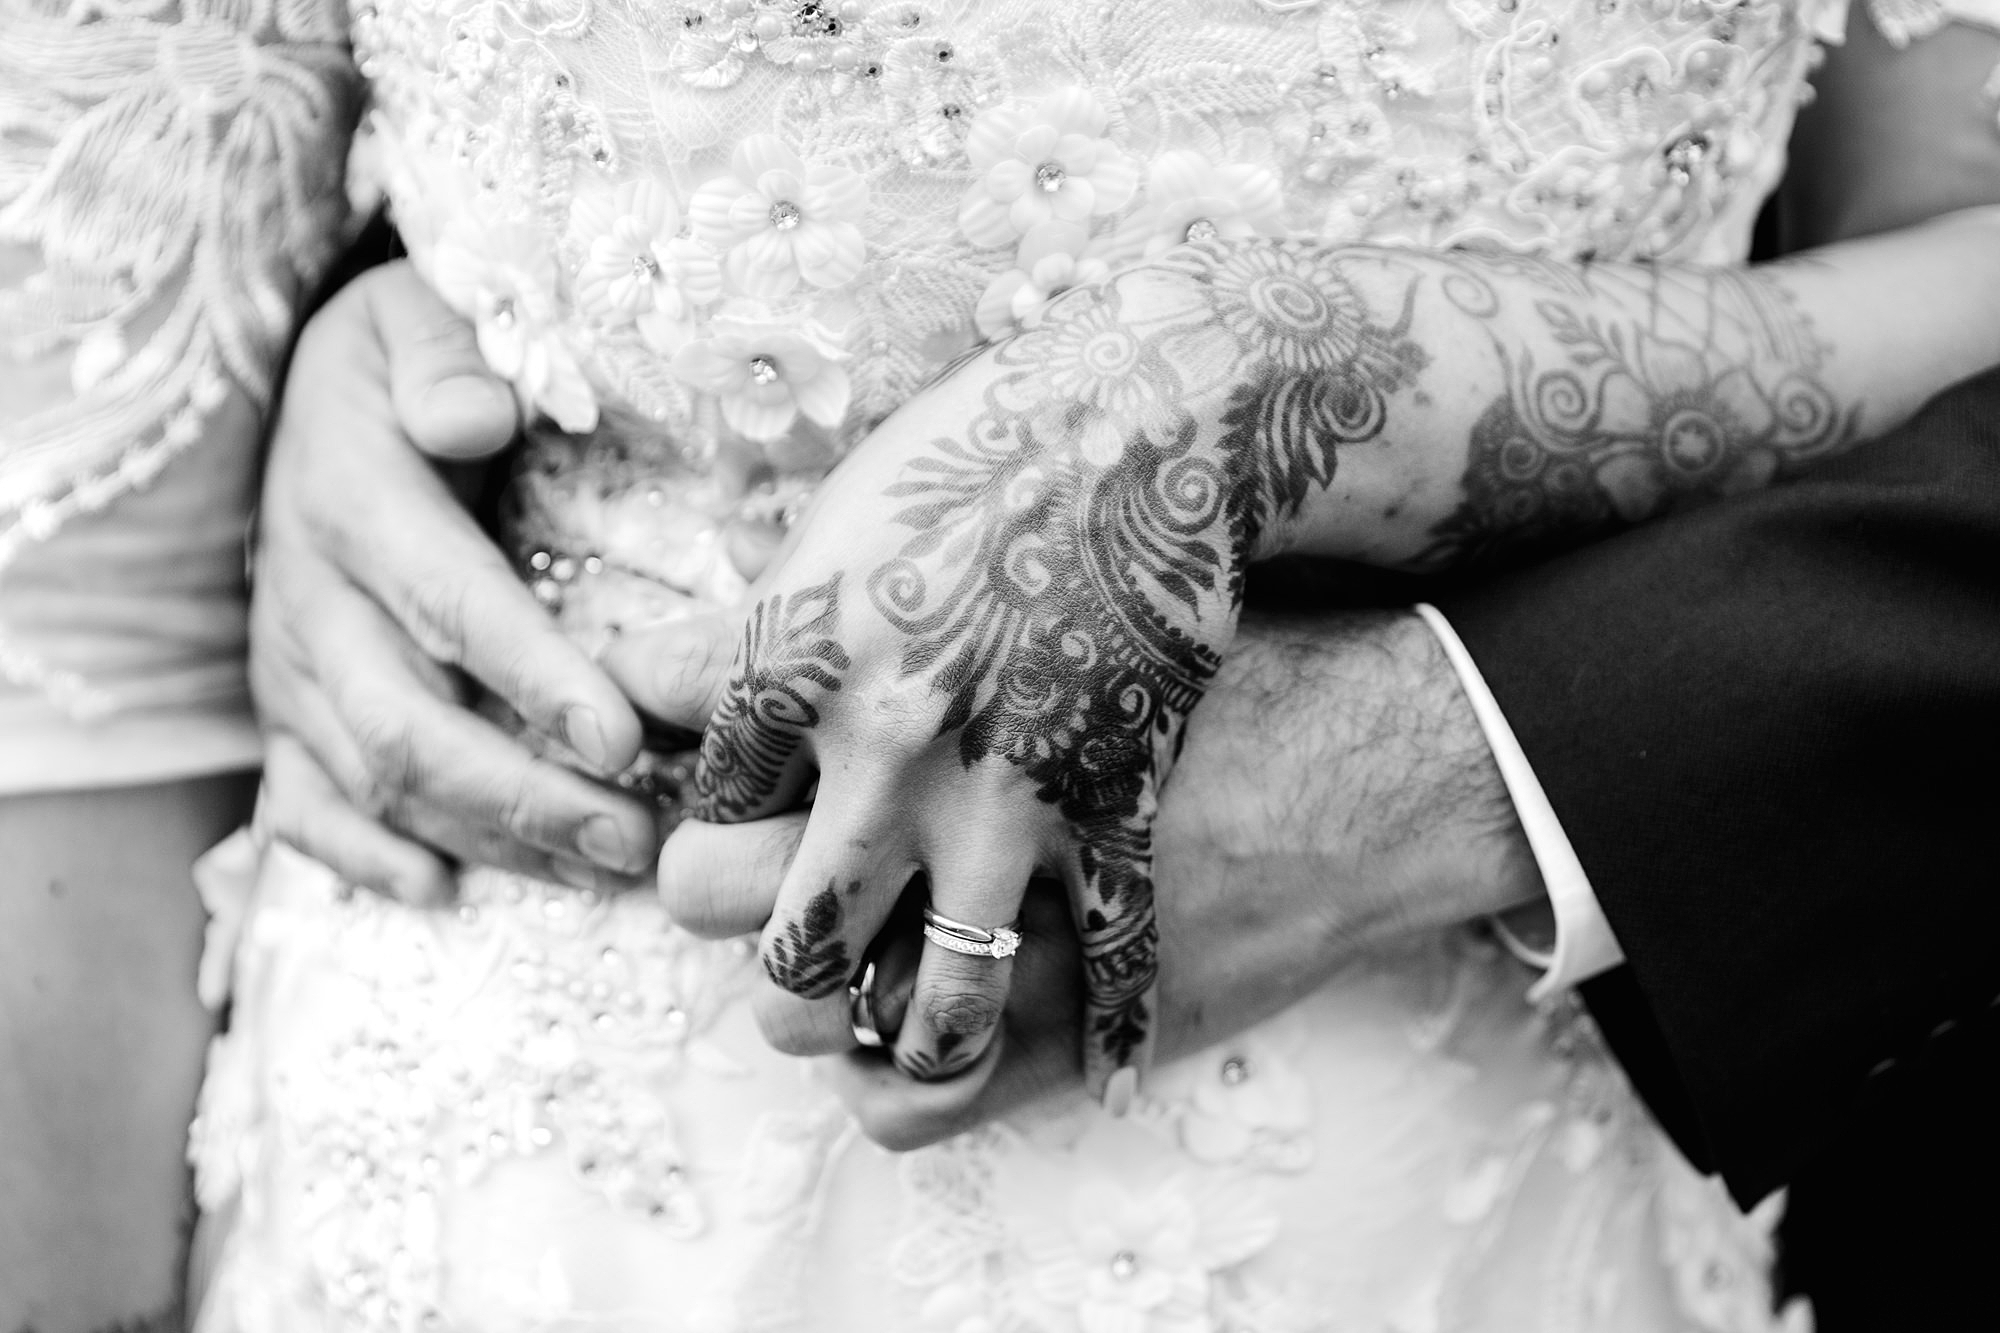 Richmond Hill Hotel wedding photography close up detail of bride's hand with henna